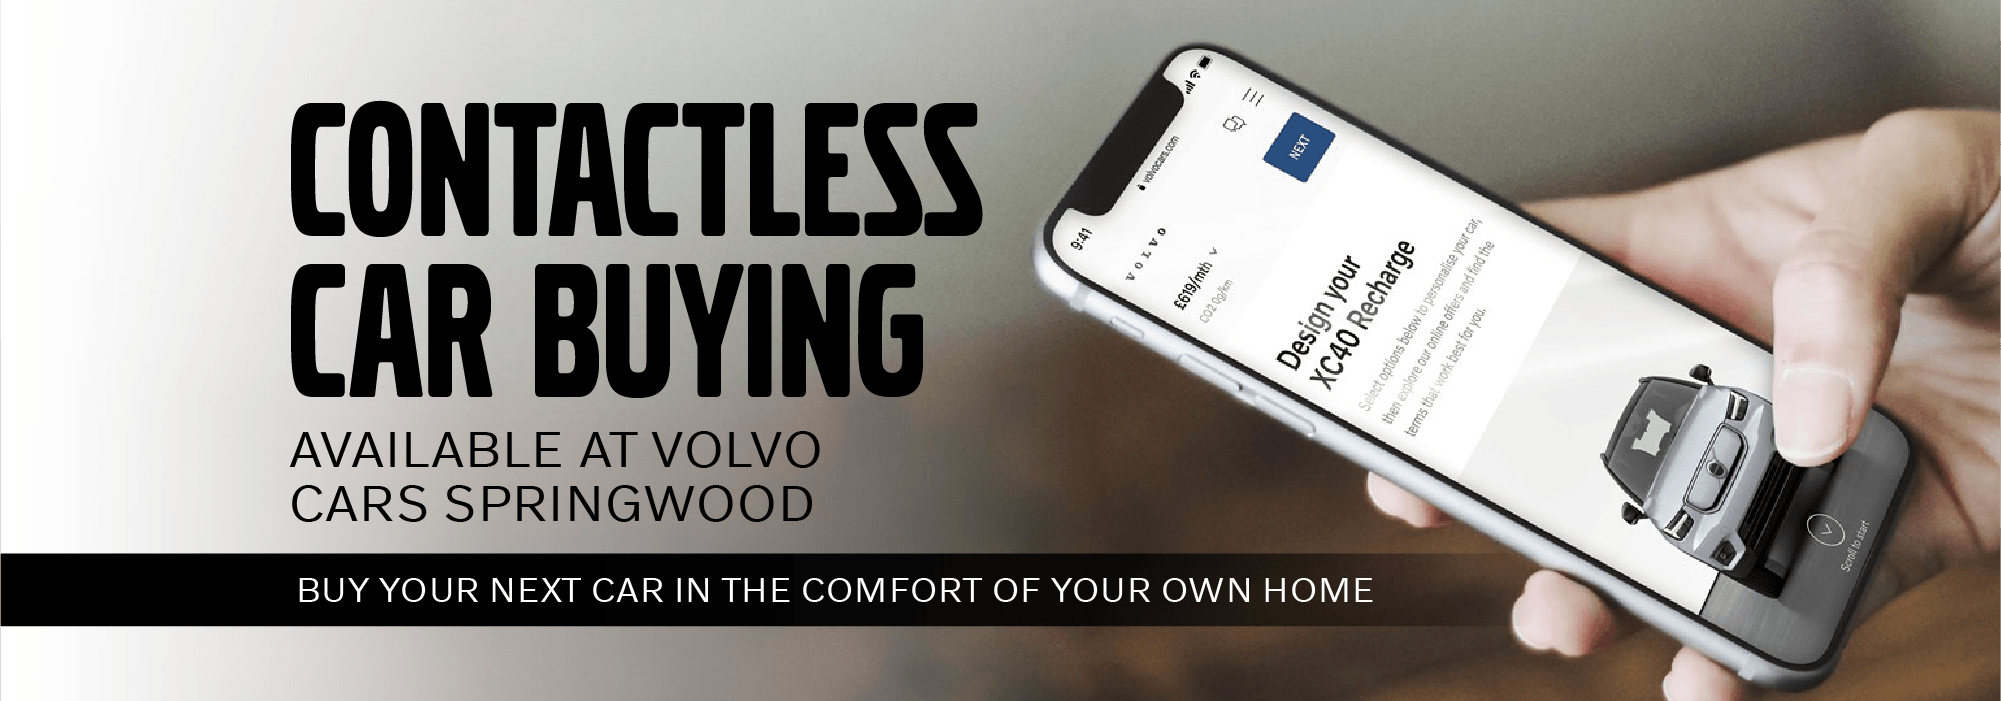 Buy your next car from the comfort of your own home